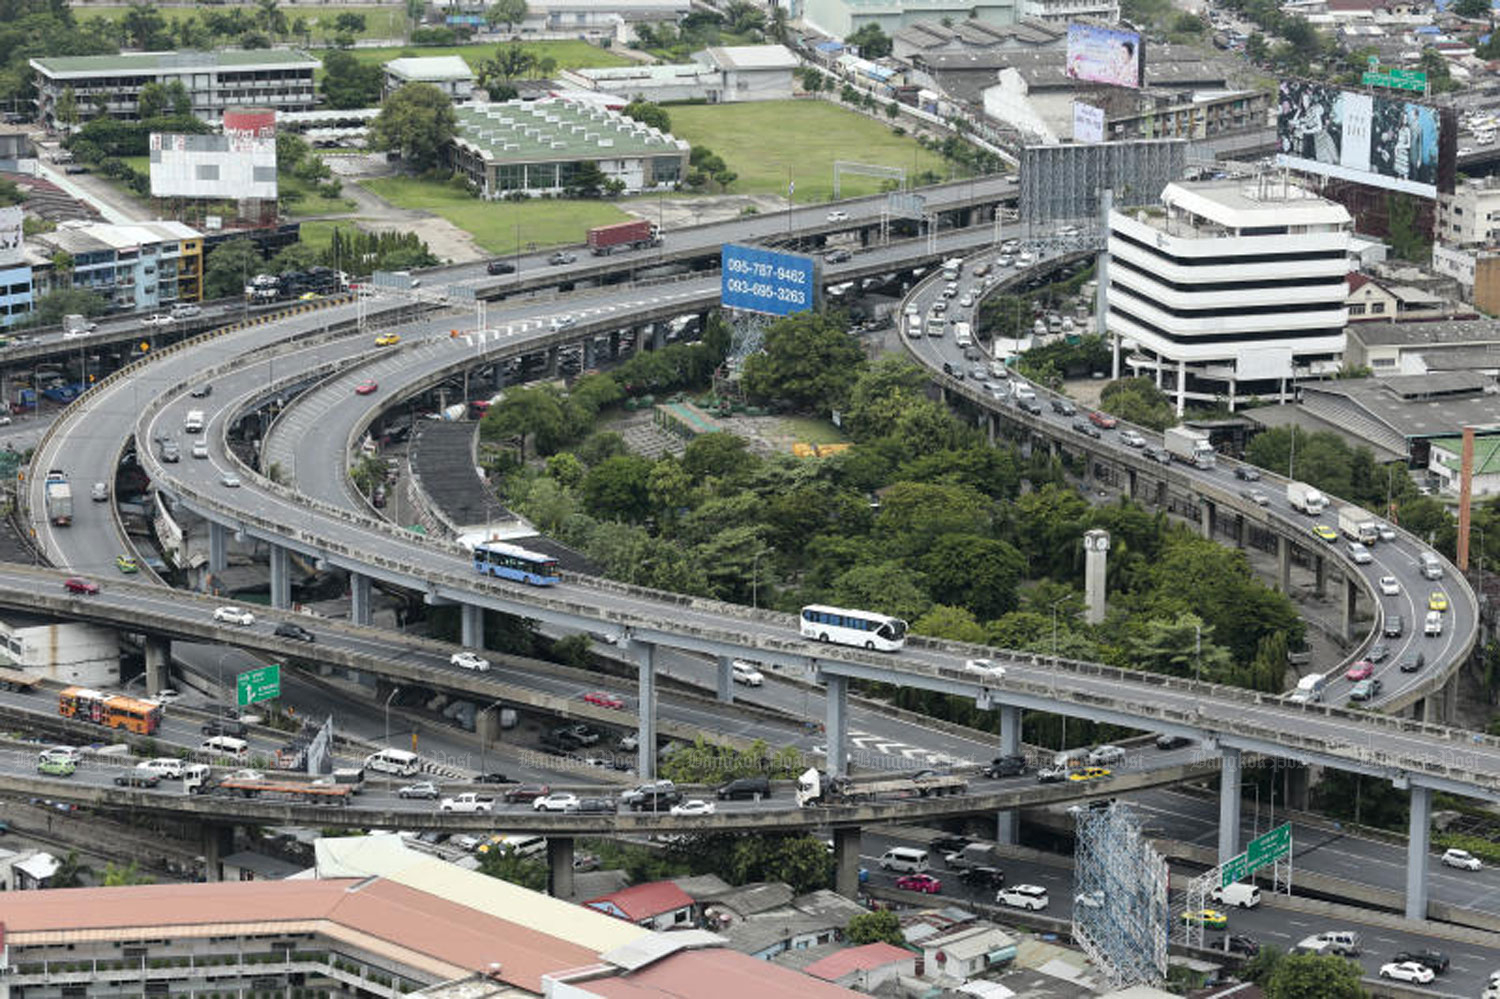 The Chaloem Maha Nakhon expressway, one of three expressways for which tolls will be waived on Thursday, Her Majesty Queen Suthida's birthday. (File photo)